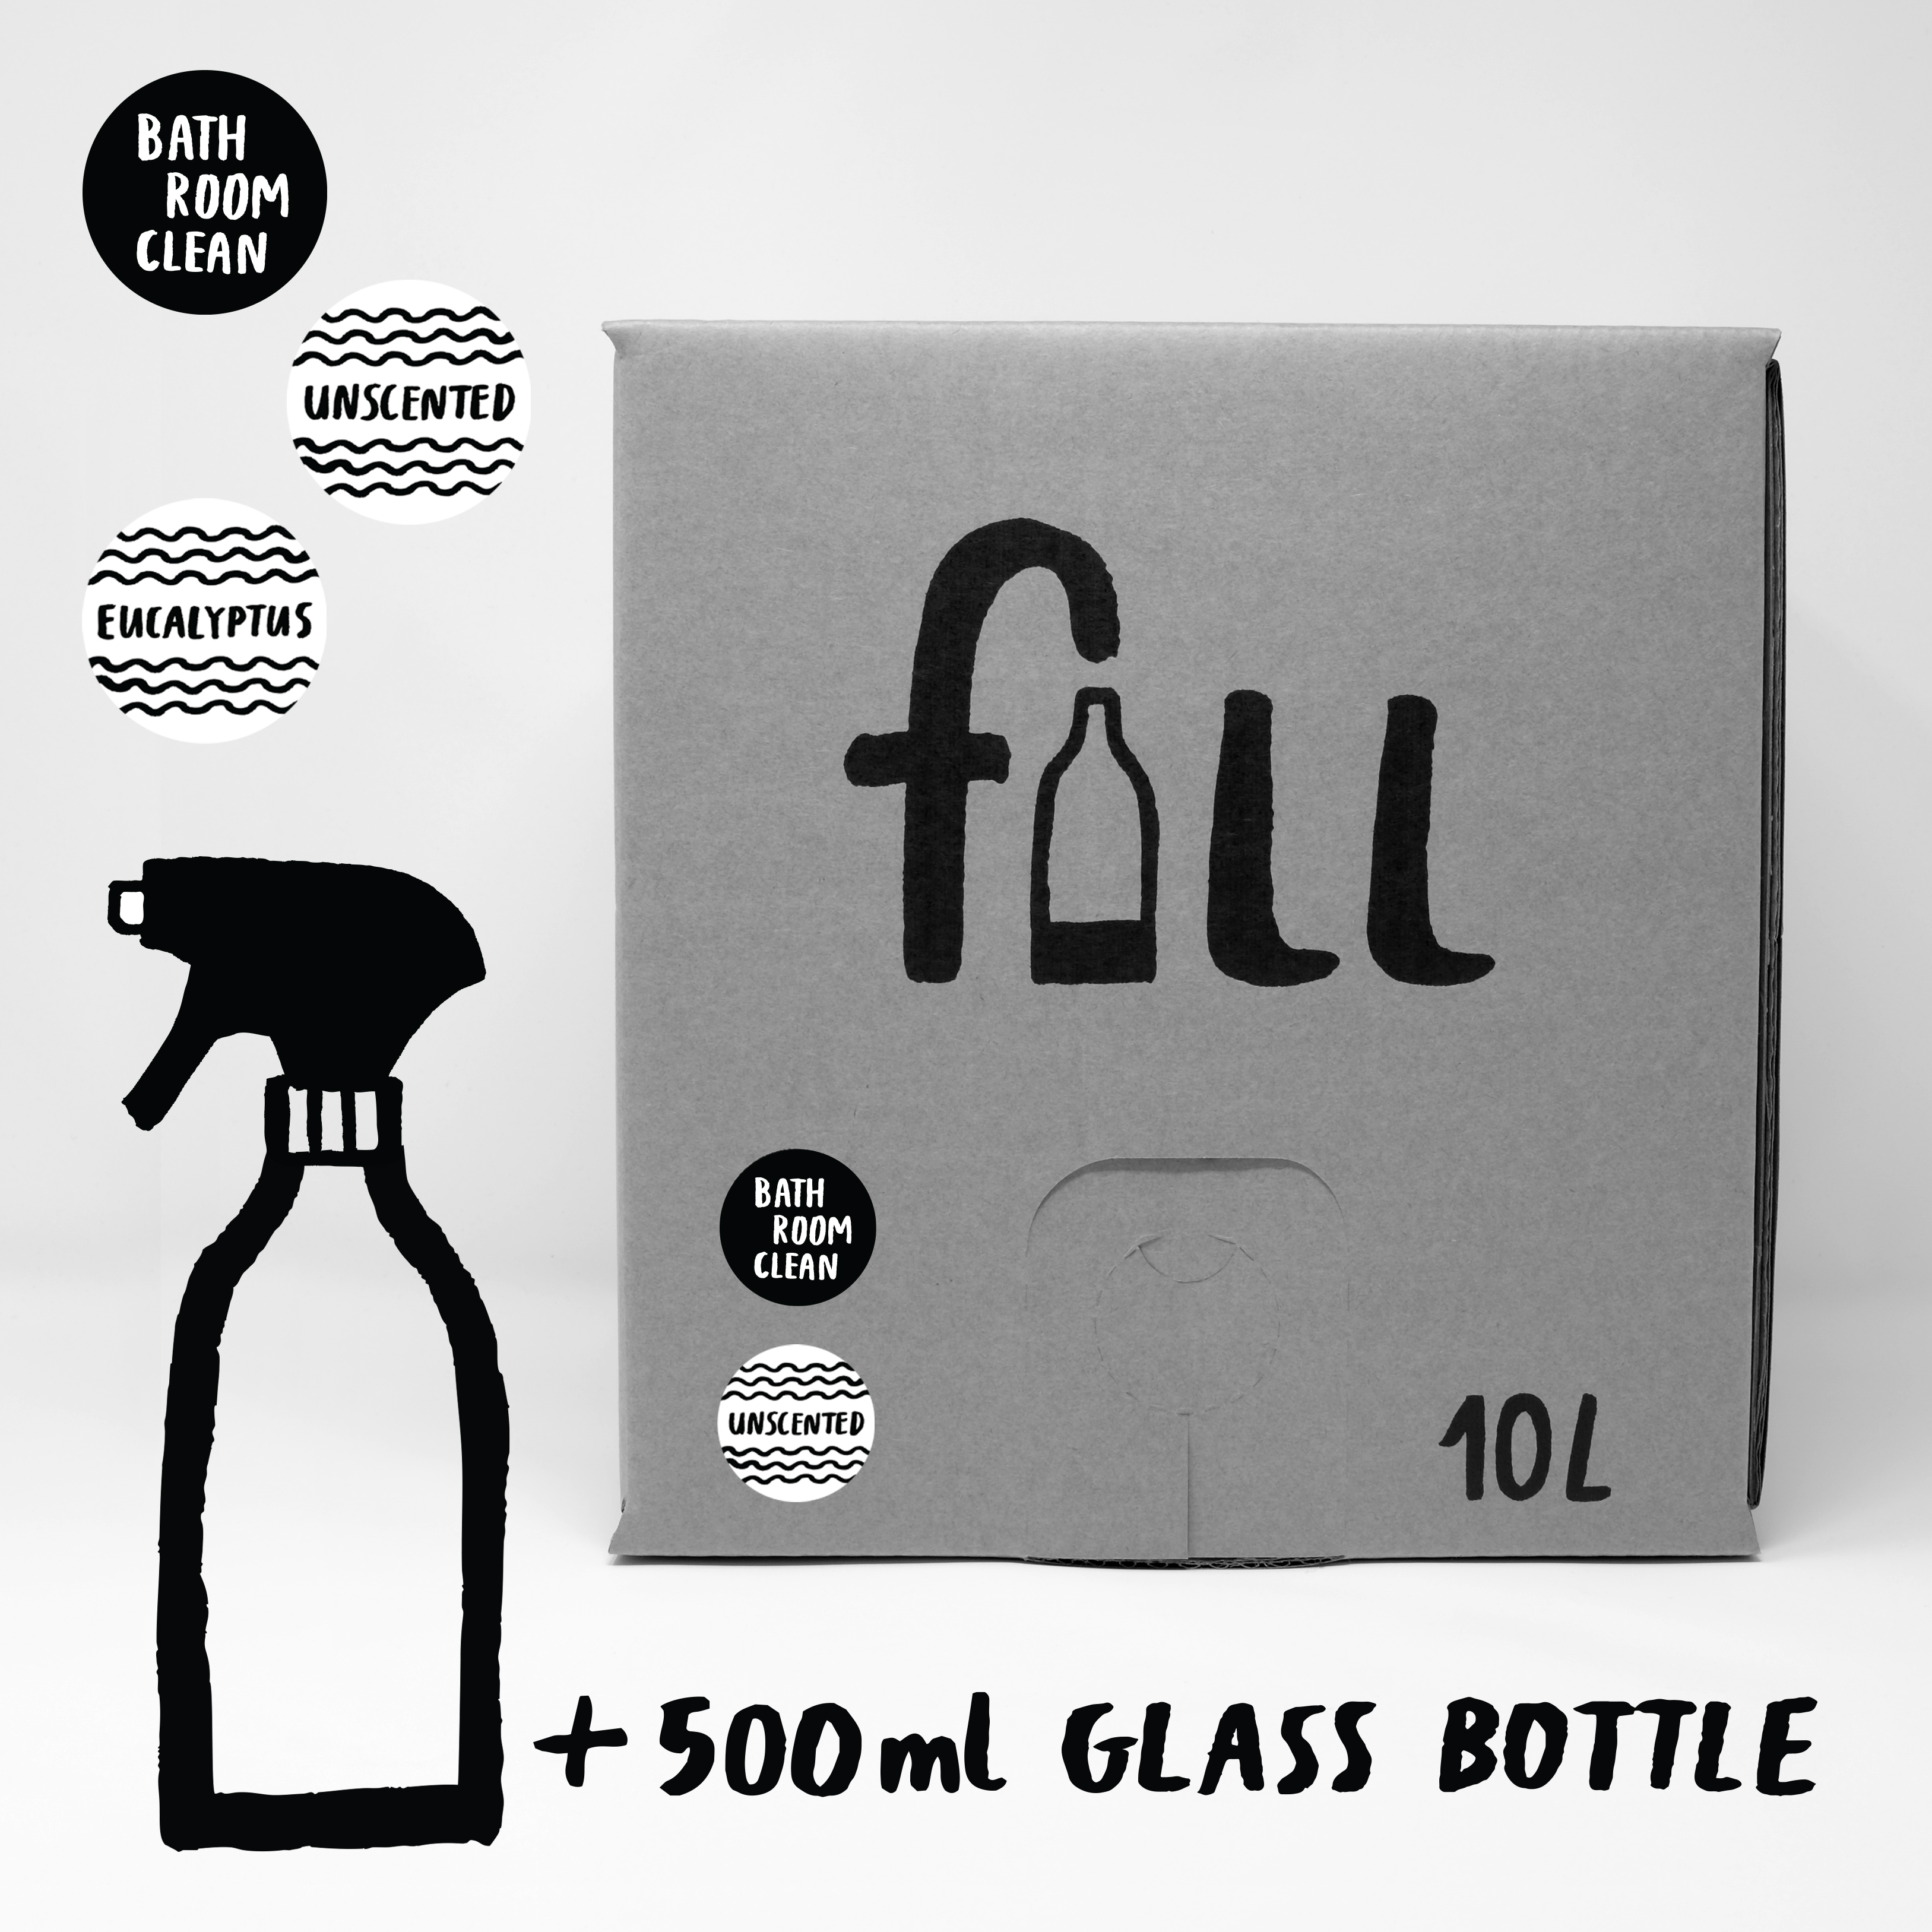 DO NOT USE Fill Refill Co Bathroom Clean Full 500ml Bottle with a Trigger Spray Top